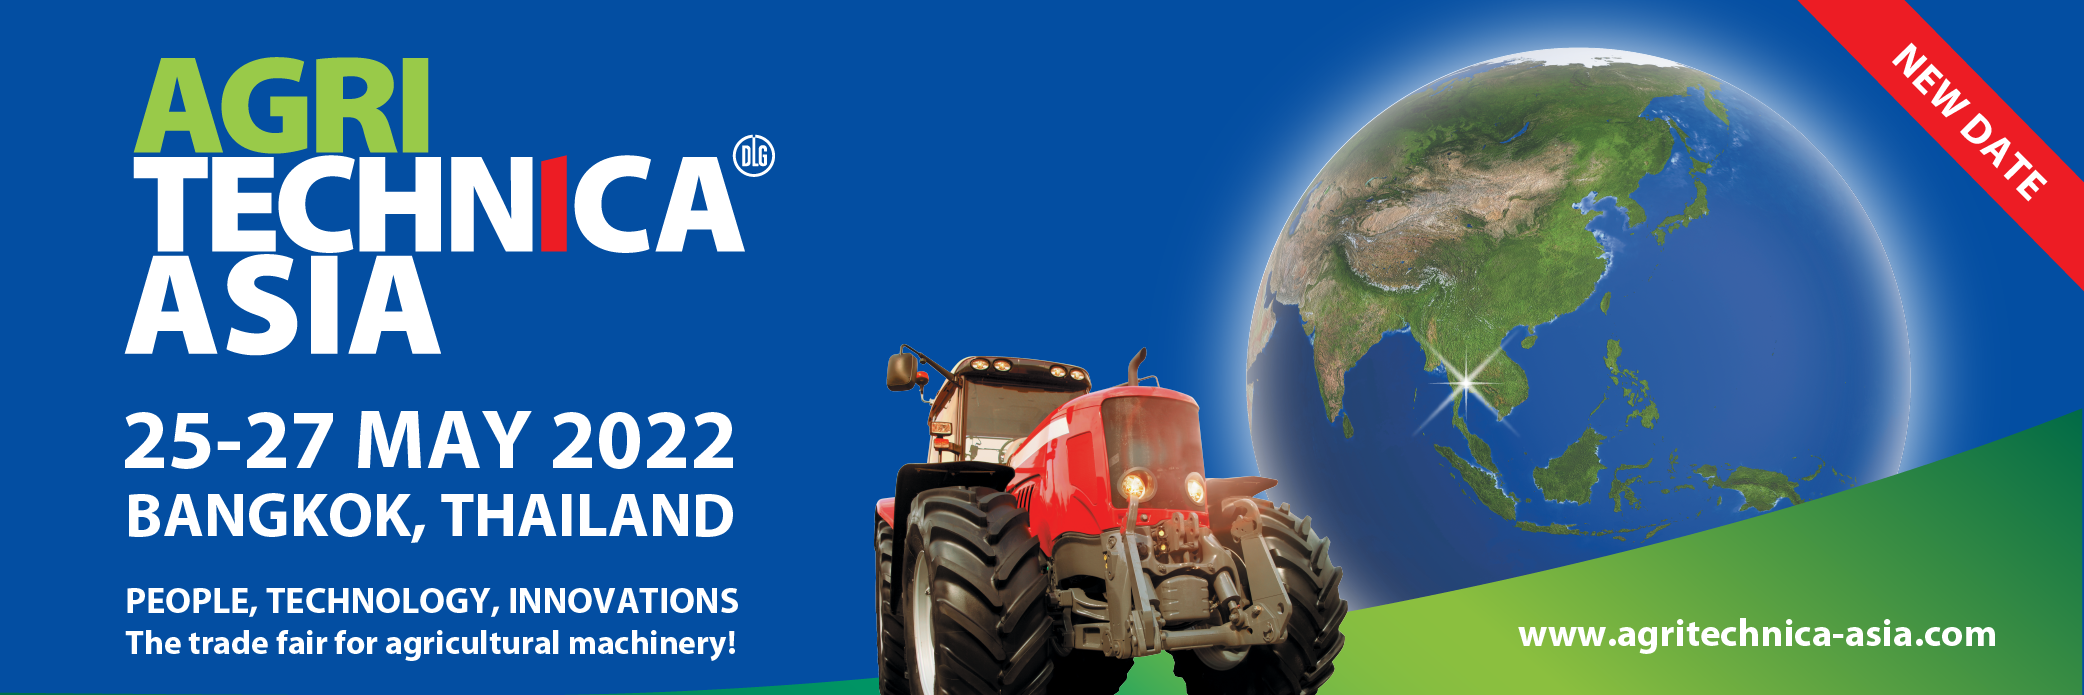 Agritechnica Asia And Horti Asia Event And Trade Fair Program For 2021 2022 Agritechnica Asia